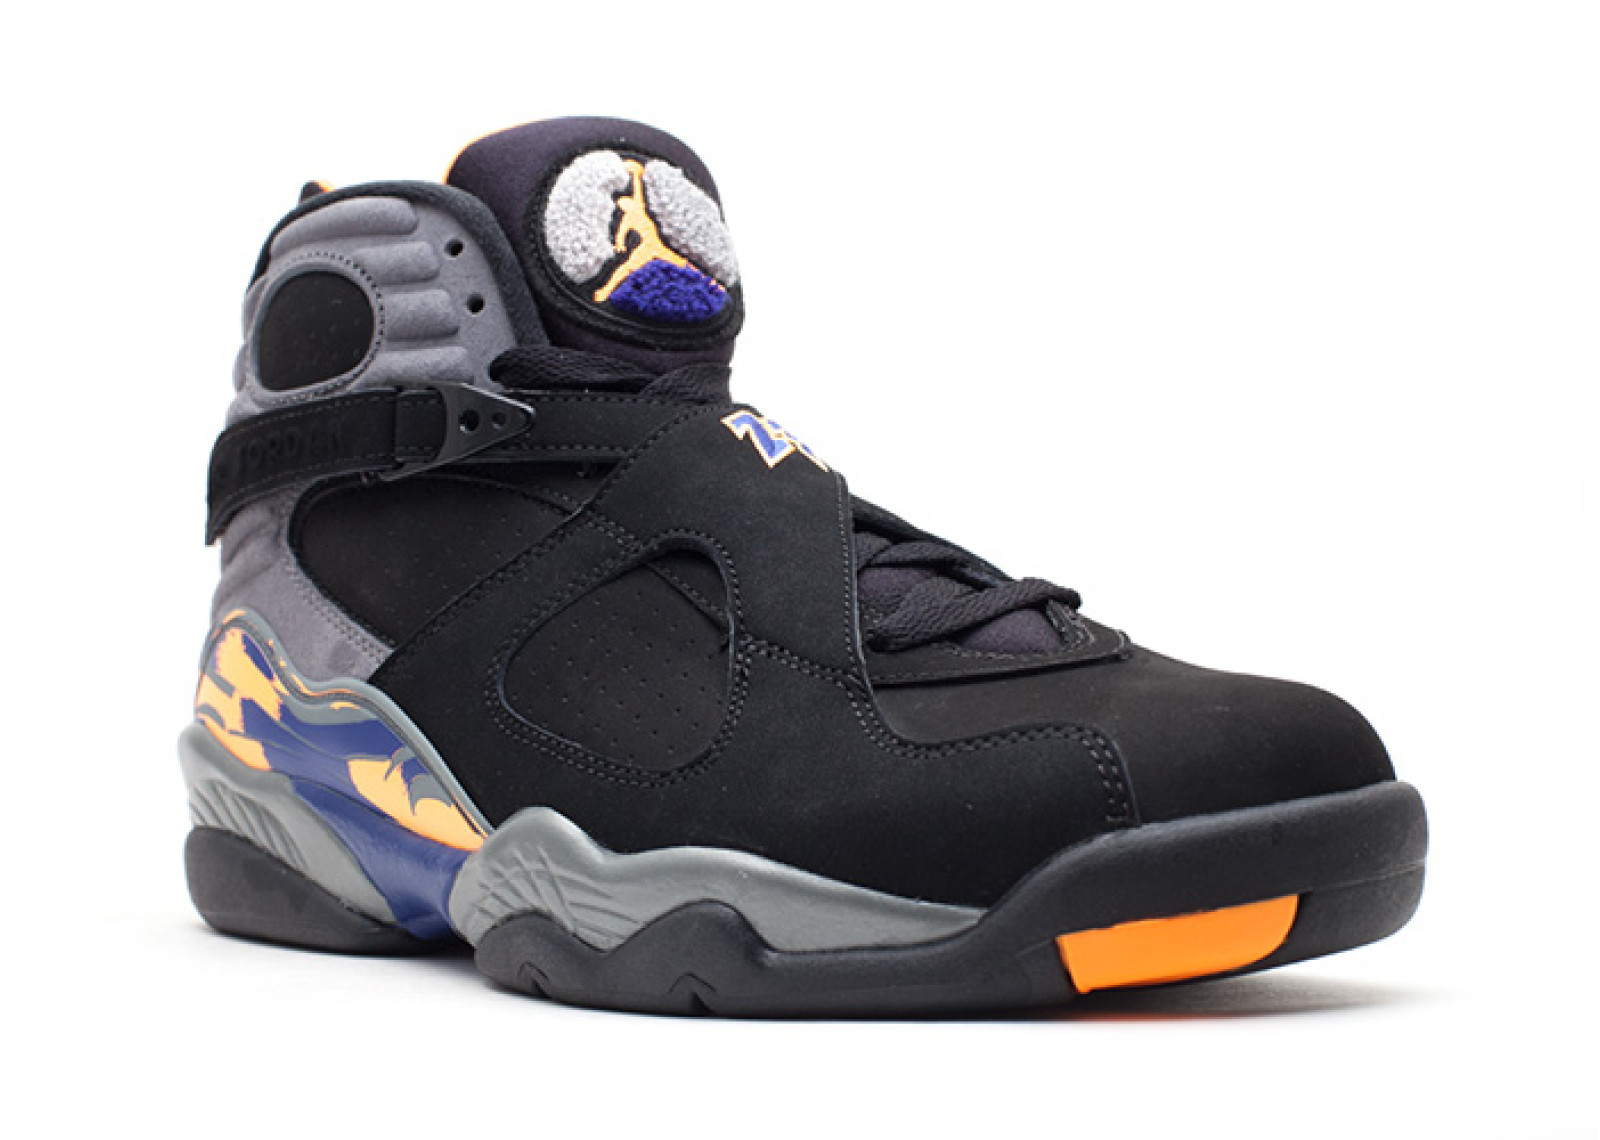 super popular 6c988 8eb38 AIR JORDAN 8 RETRO  PHOENIX SUNS  - 305381-043 - Walmart.com